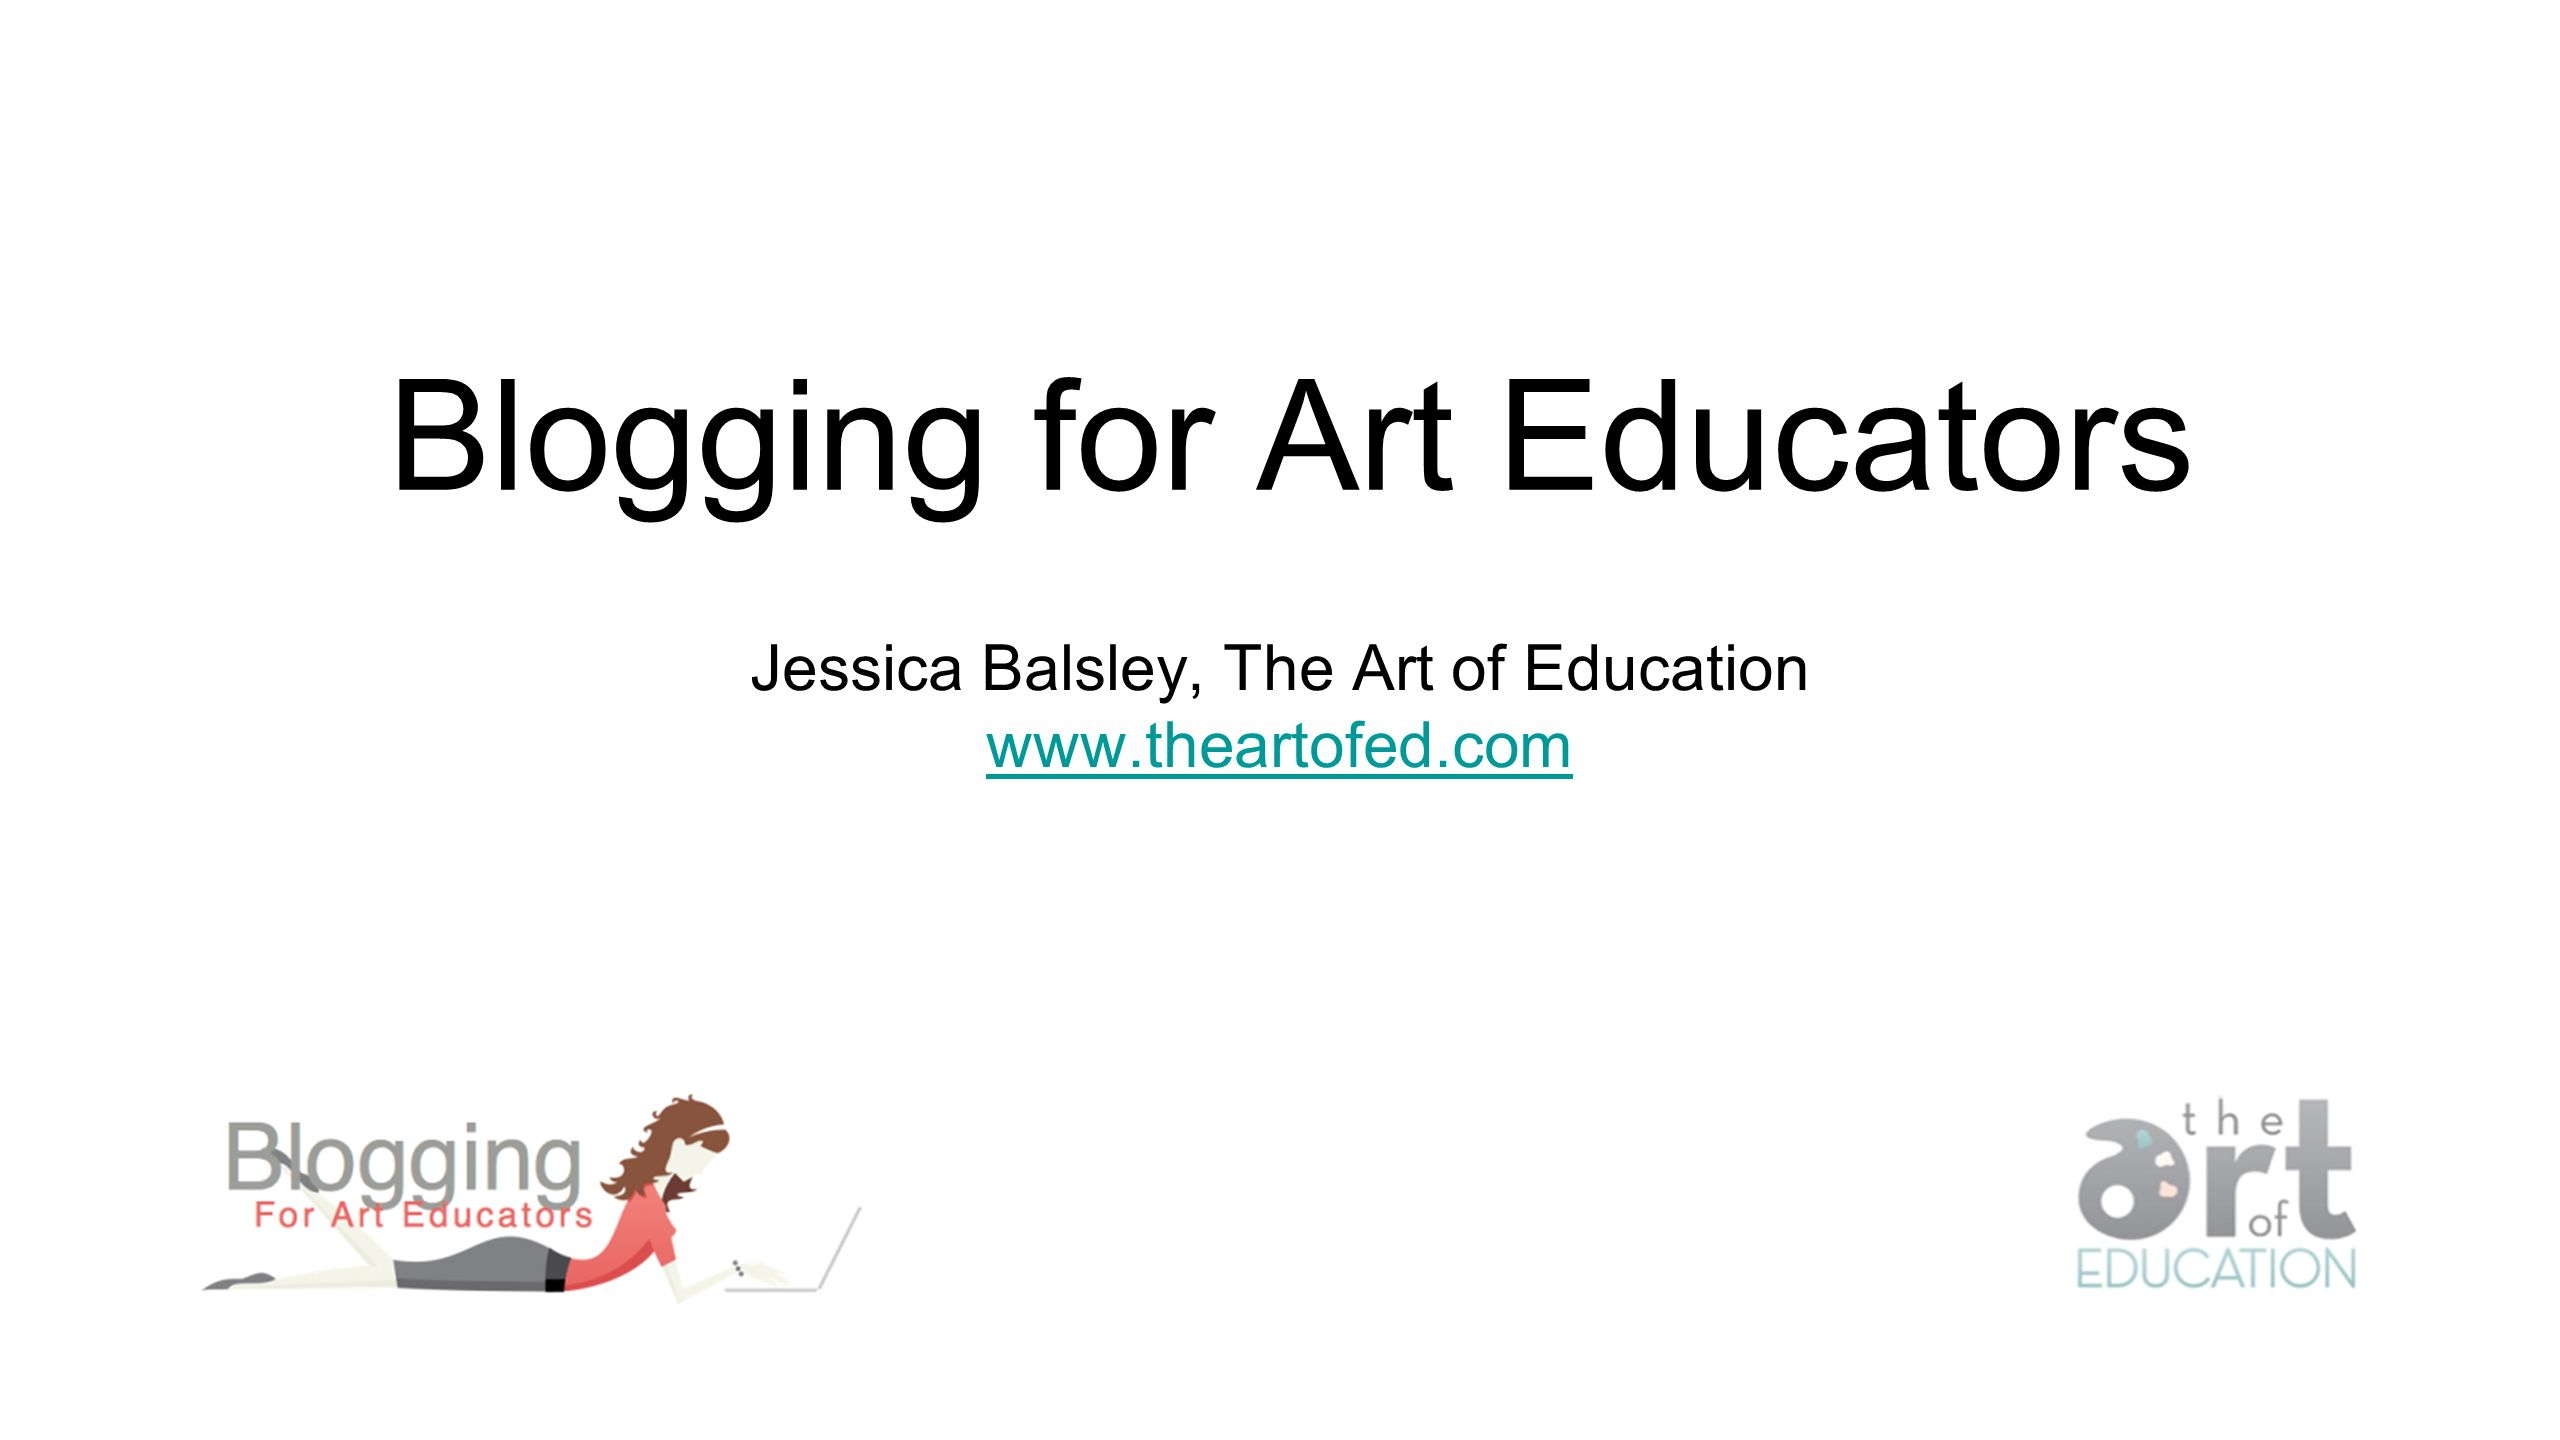 Blogging for Art Educators Jessica Balsley, The Art of Education www.theartofed.com